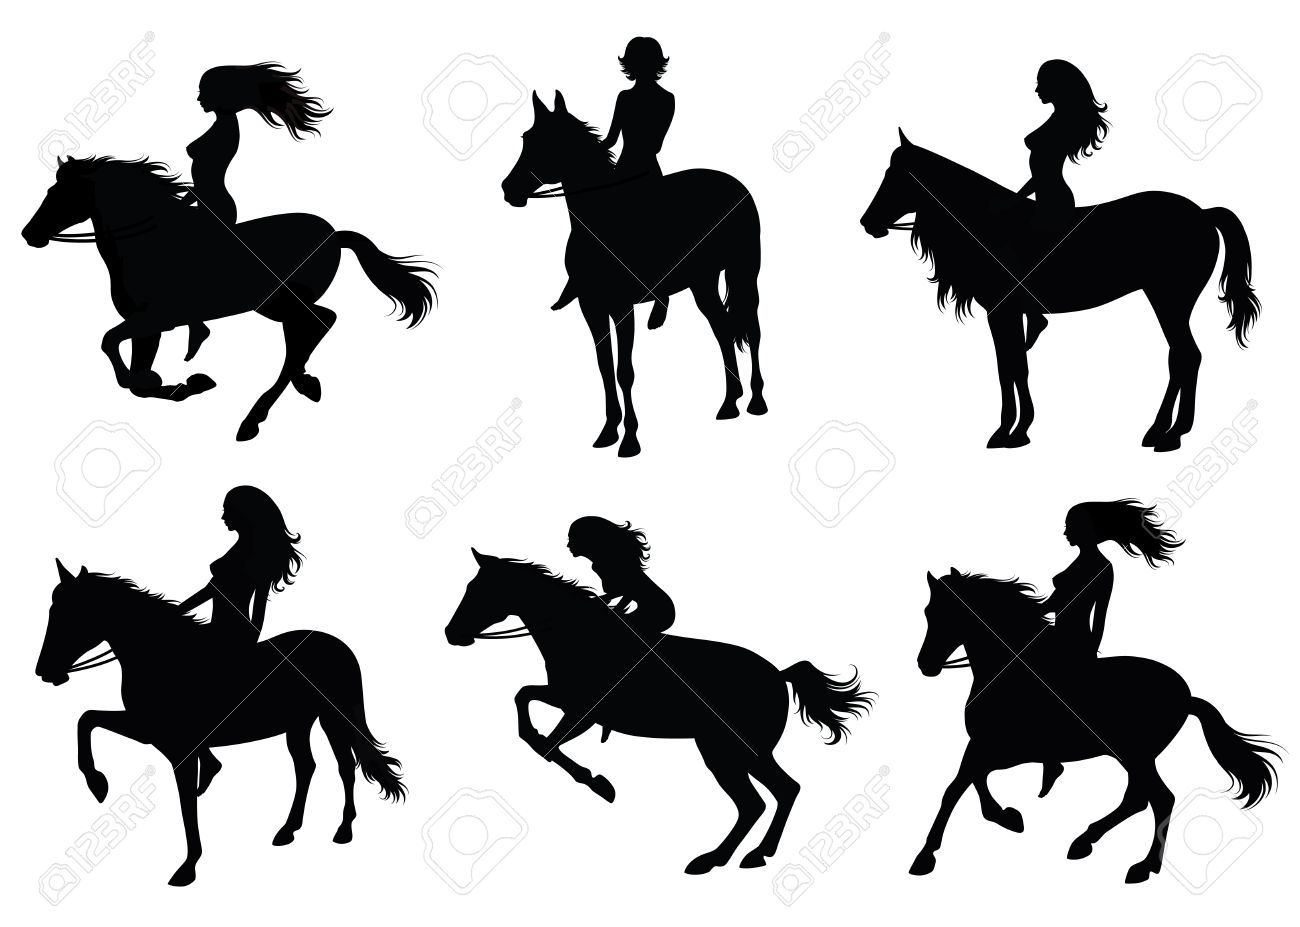 Horse Jumping: Set Of A Silhouette Of A Woman Riding A Horse